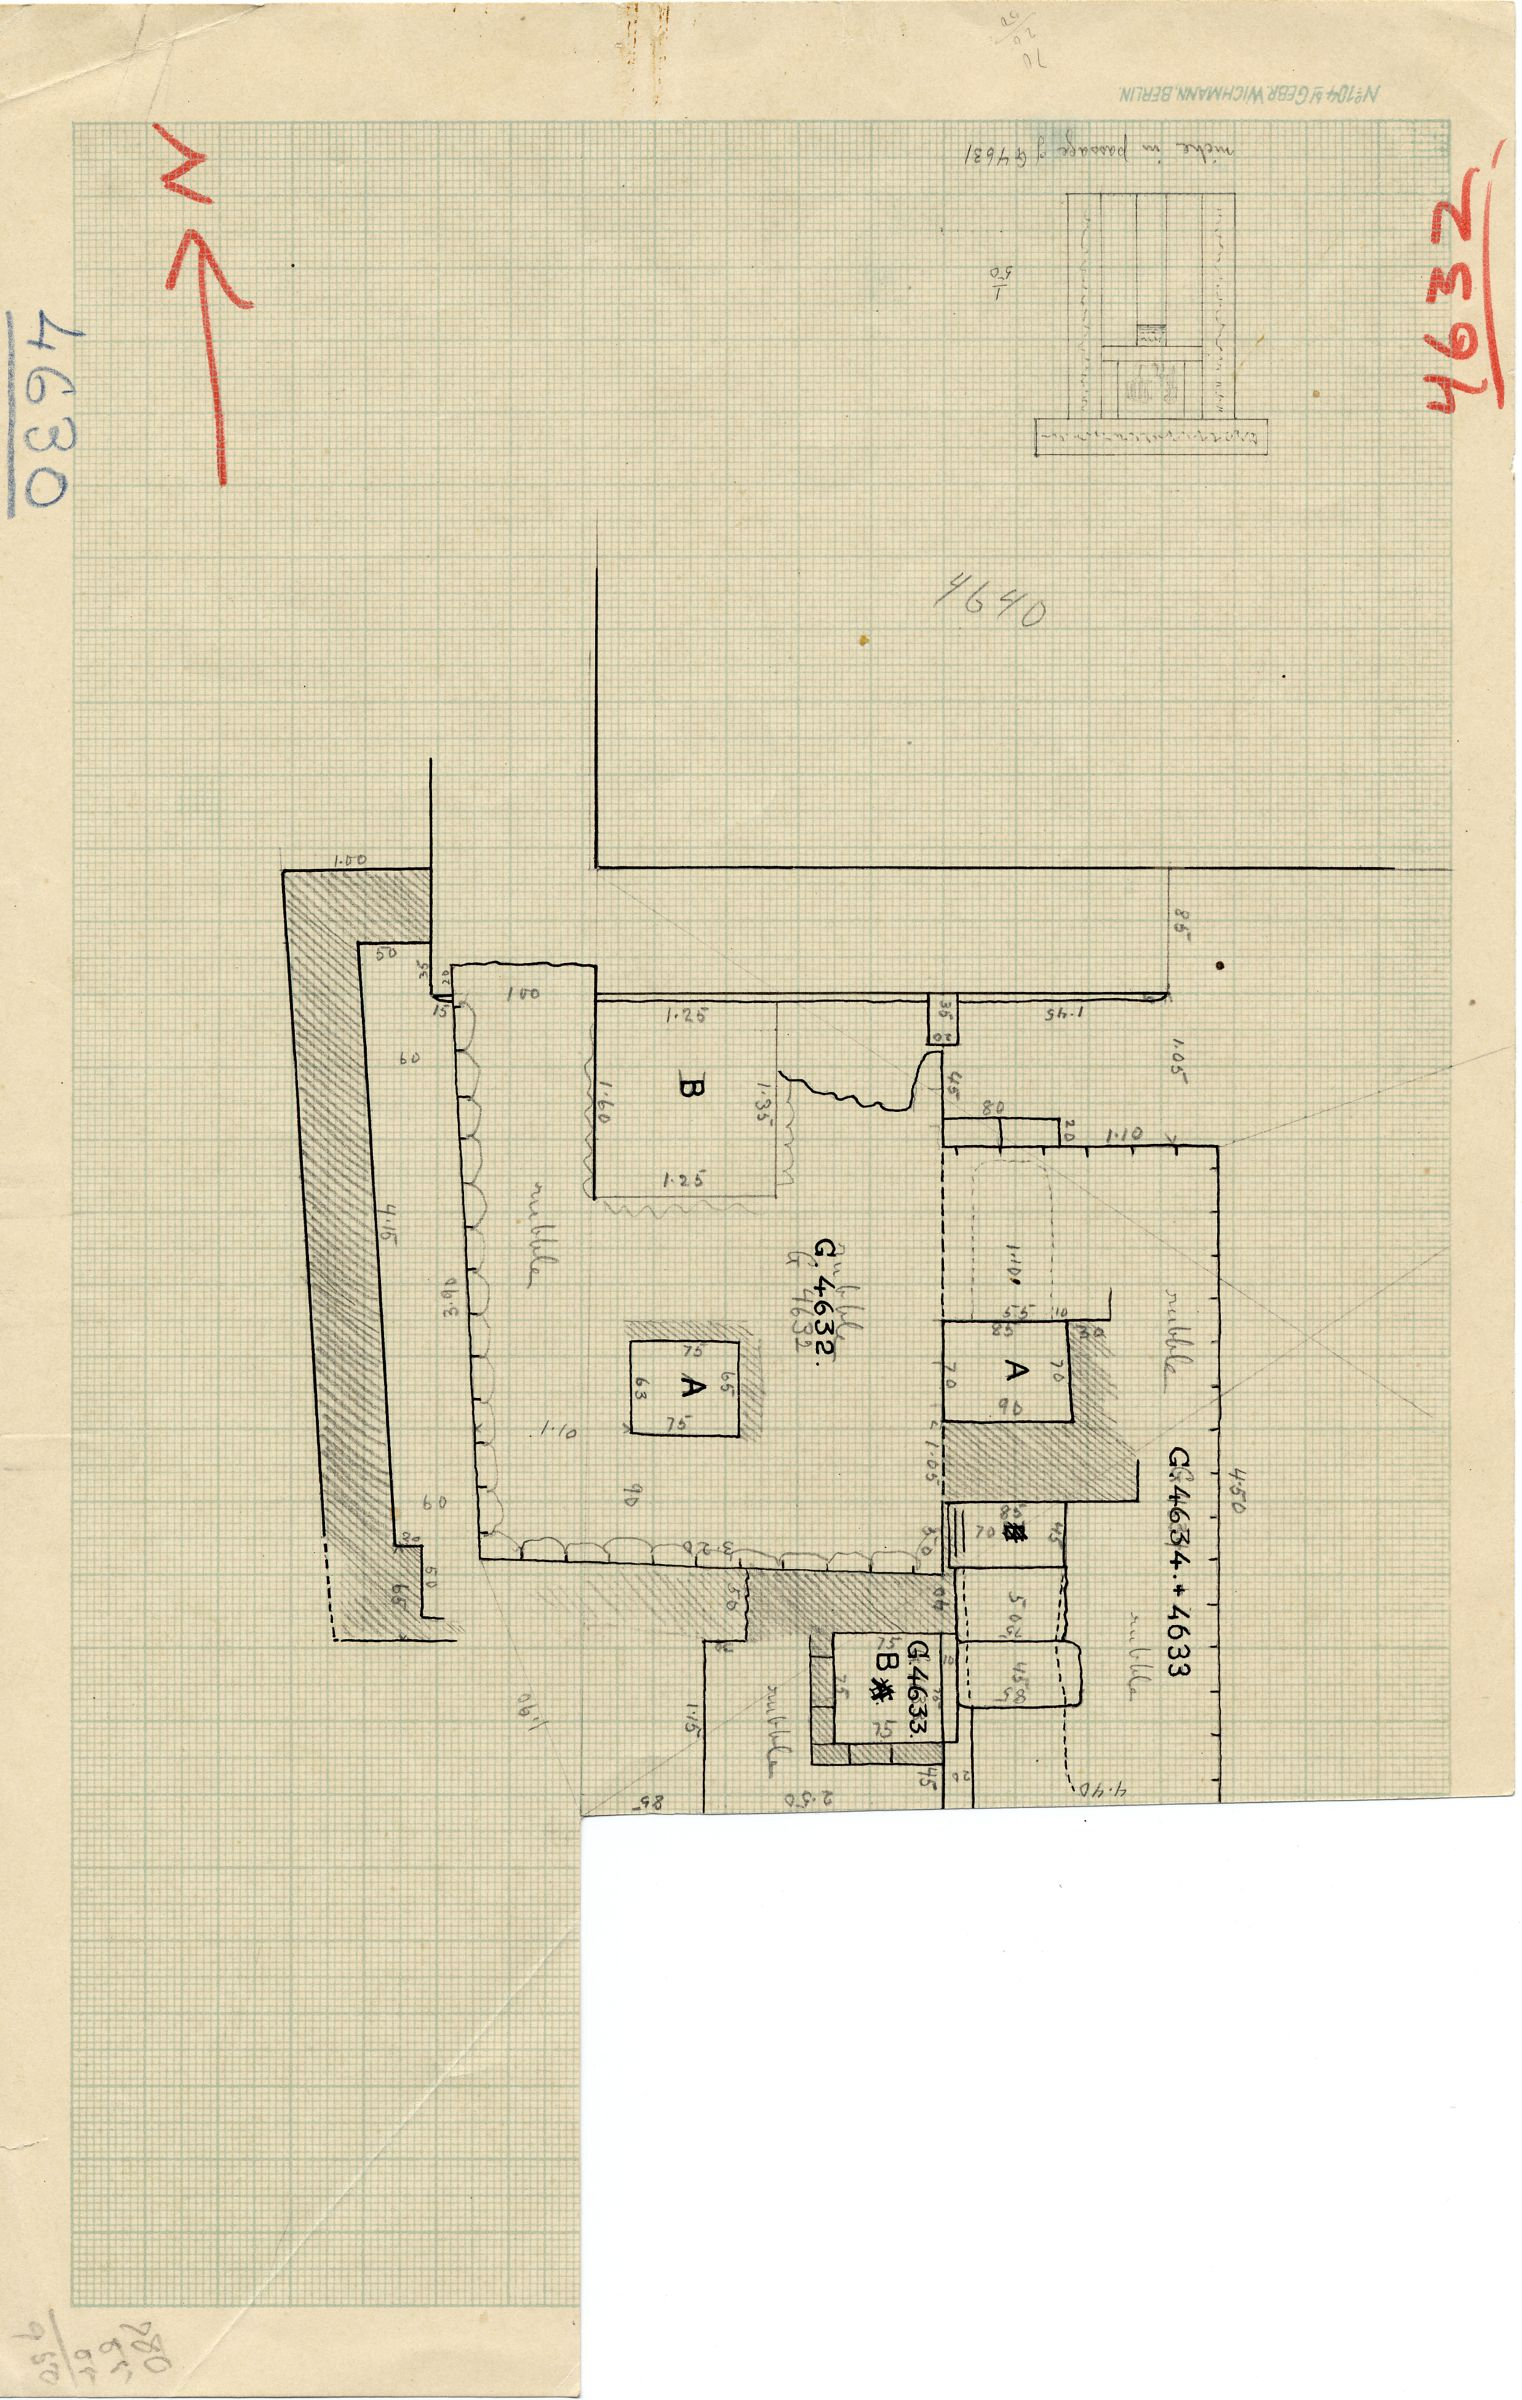 Maps and plans: Plan of G 4632 and G 4633+4634, with position of G 4640 & Drawing of G 4631 false door